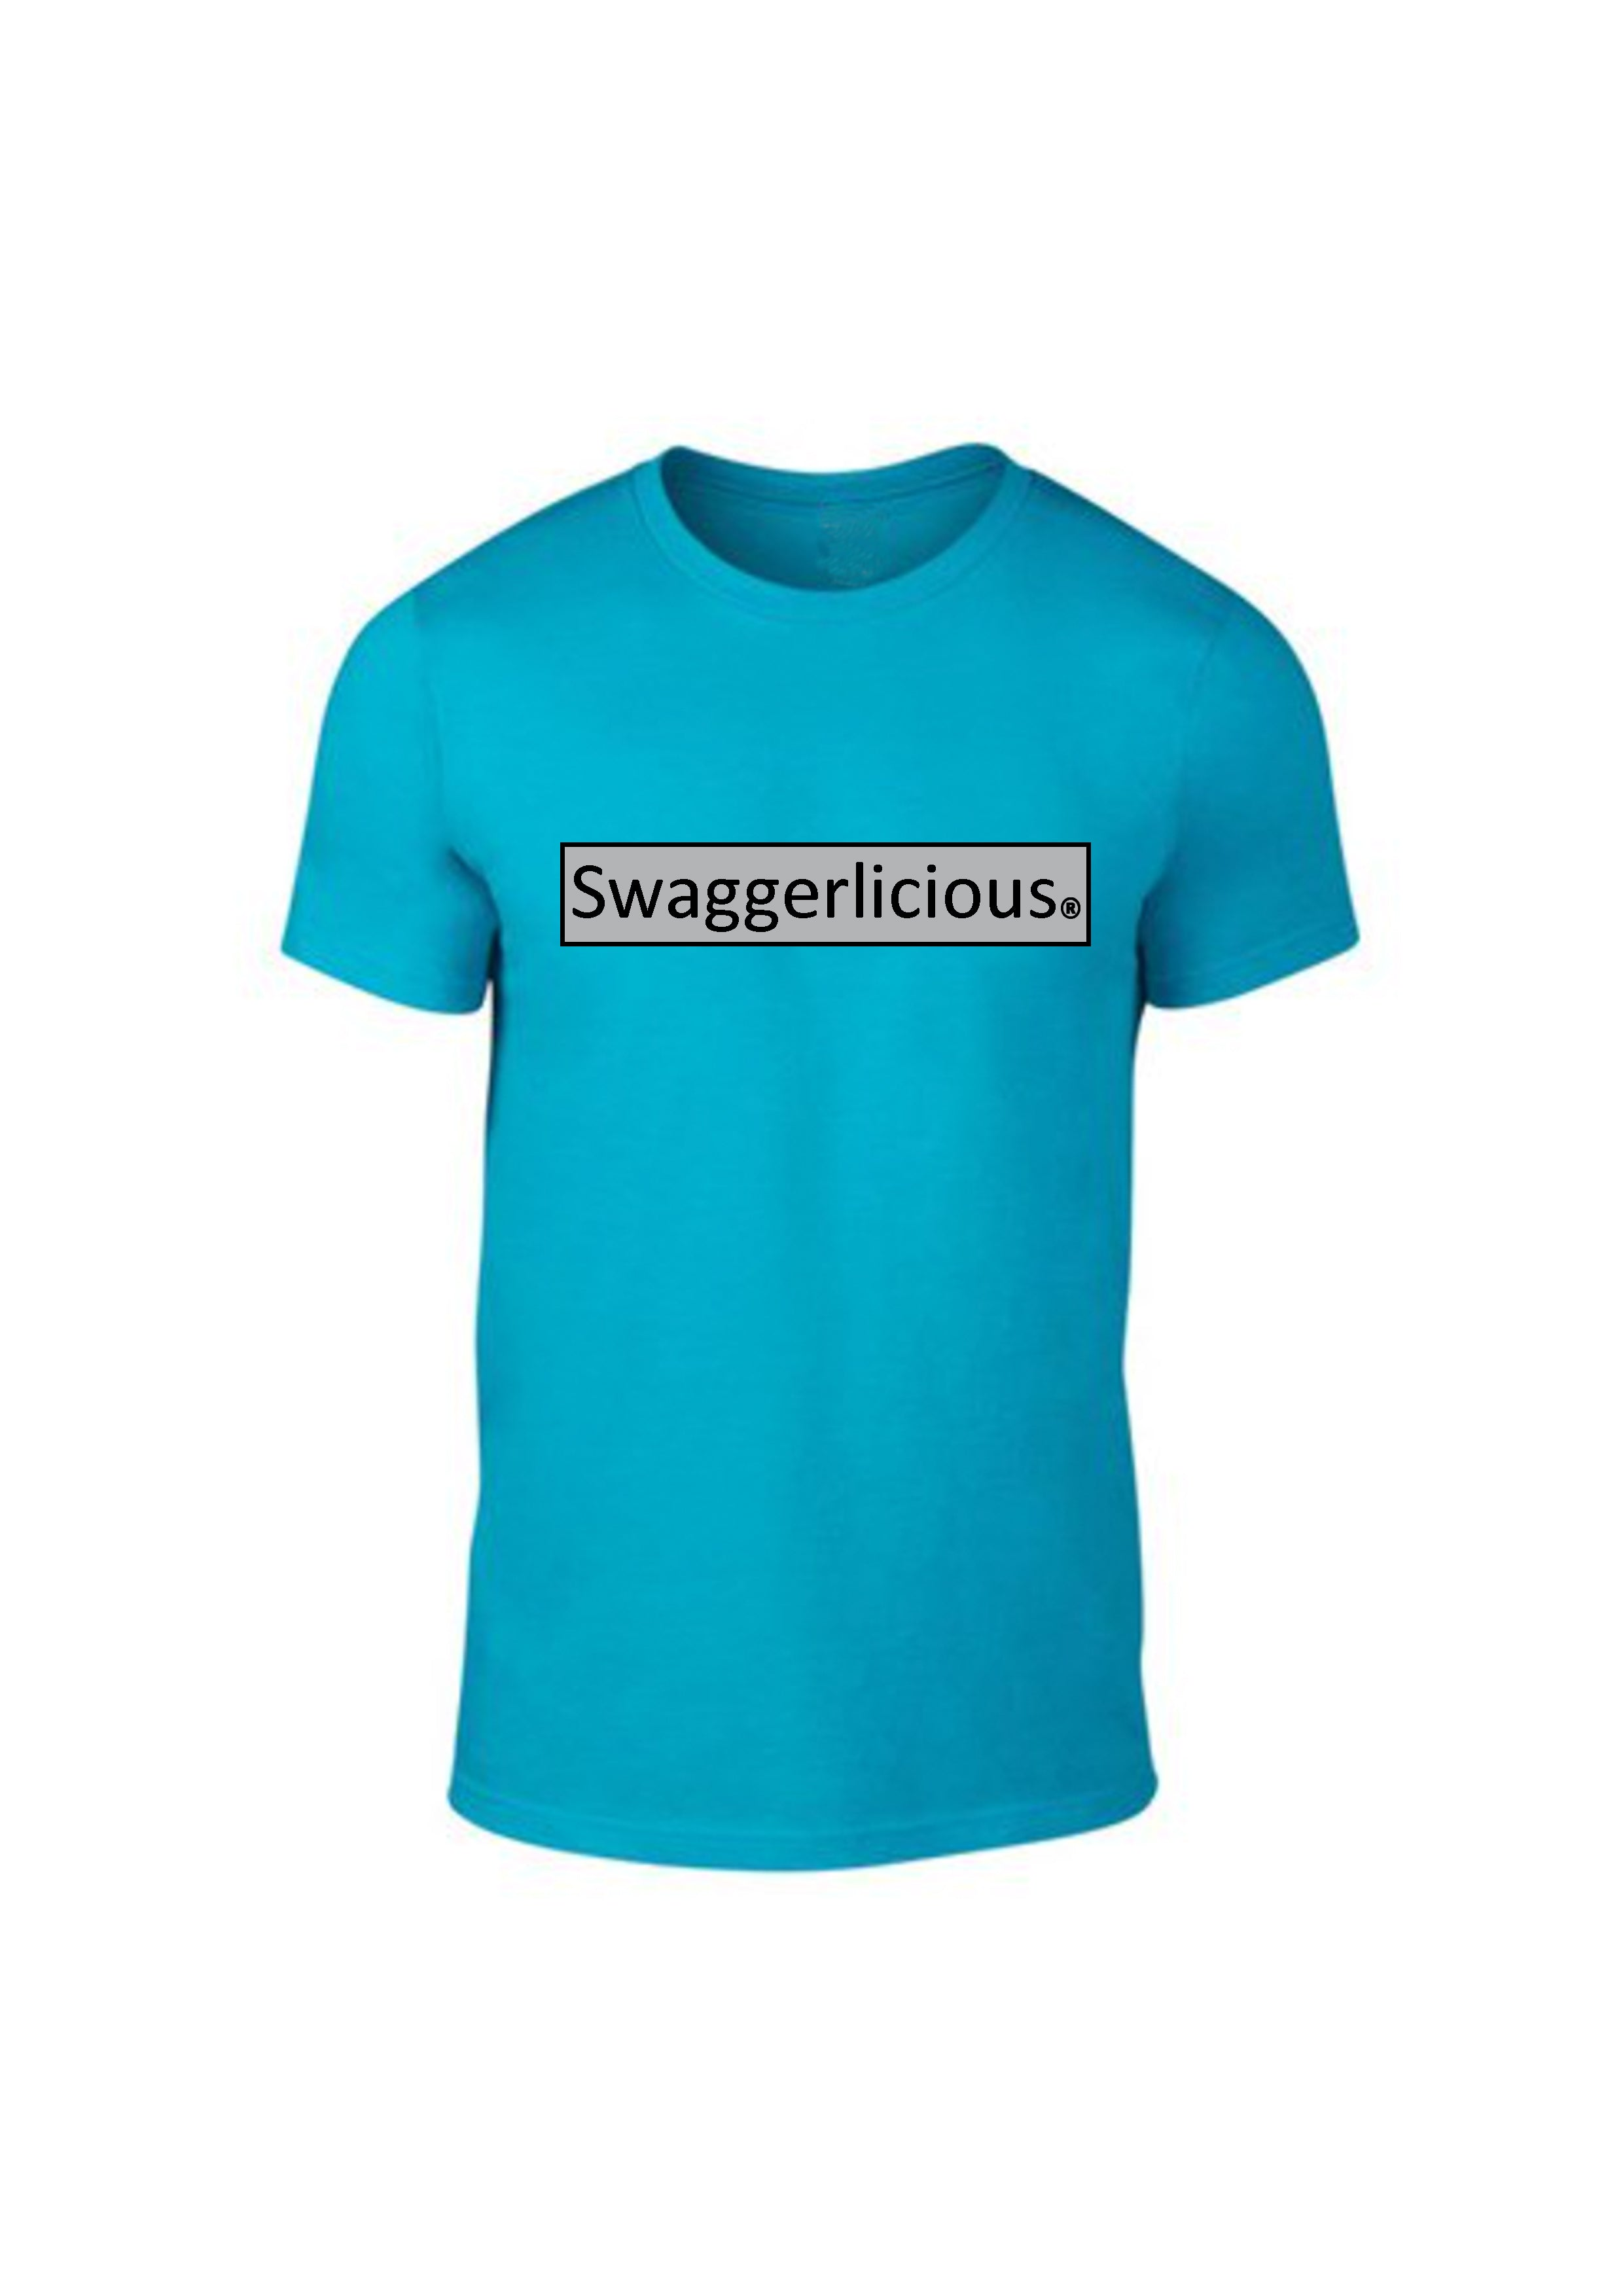 Caribbean Blue Swaggerlicious Crisp Tee - swaggerlicious-clothing.com